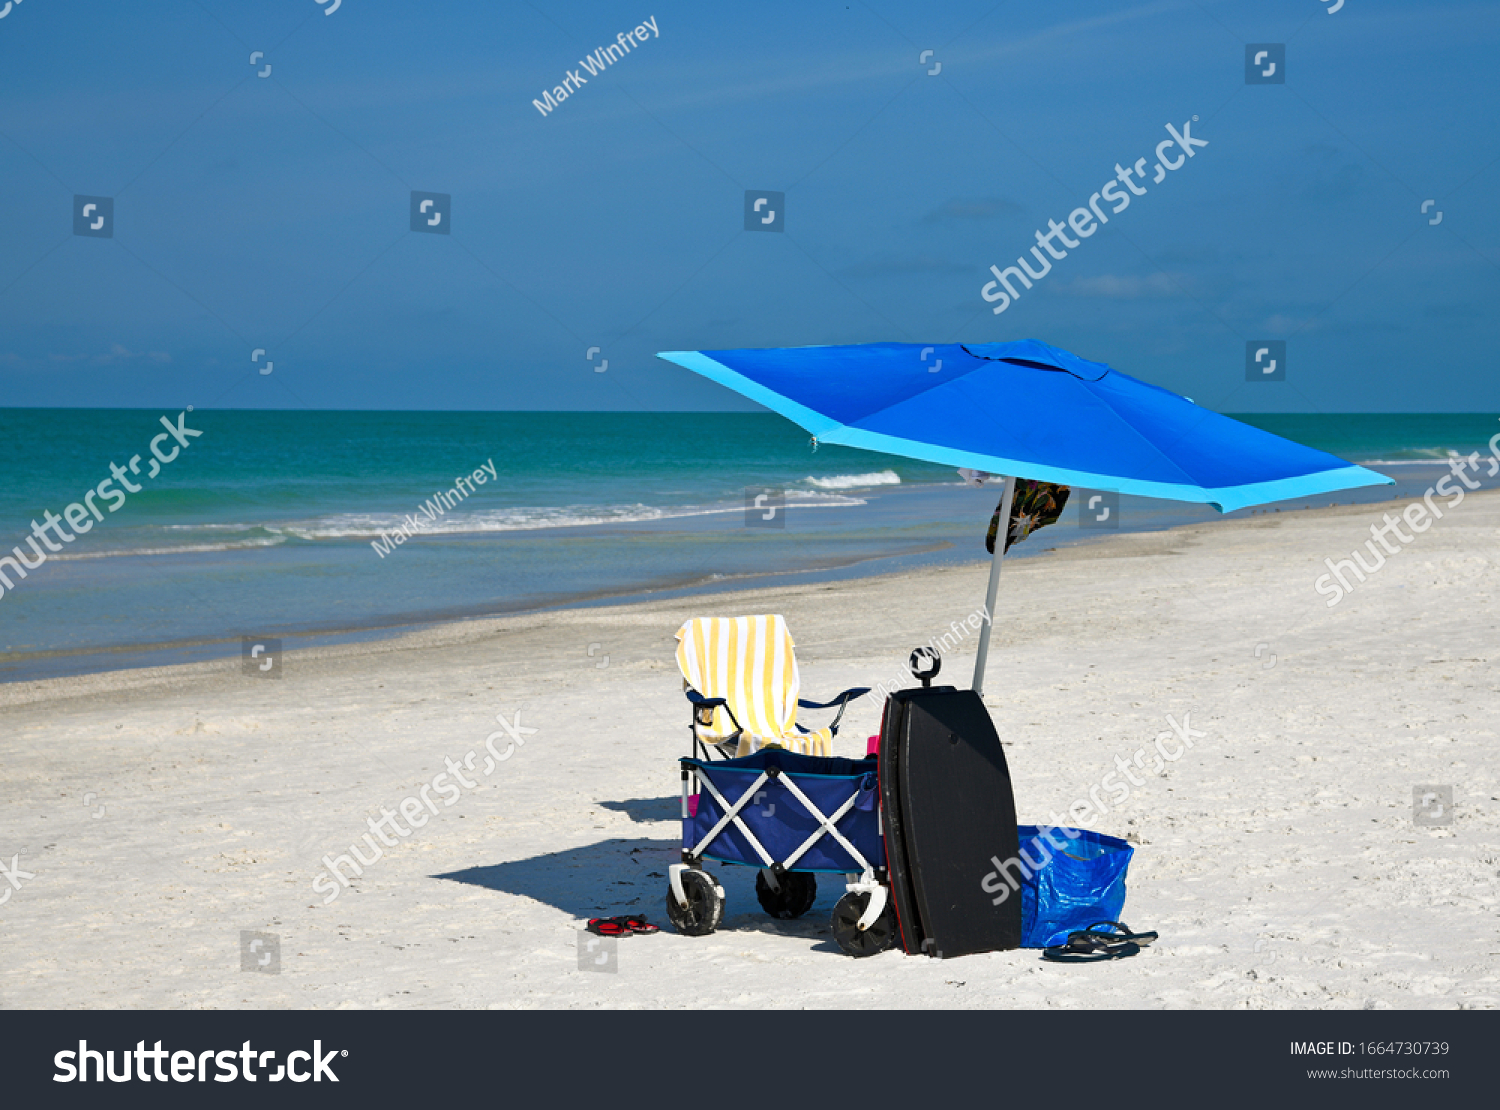 A Blue Beach Umbrella and Chair with Miscellaneous Beach Items to Enjoy a Day at the Beach